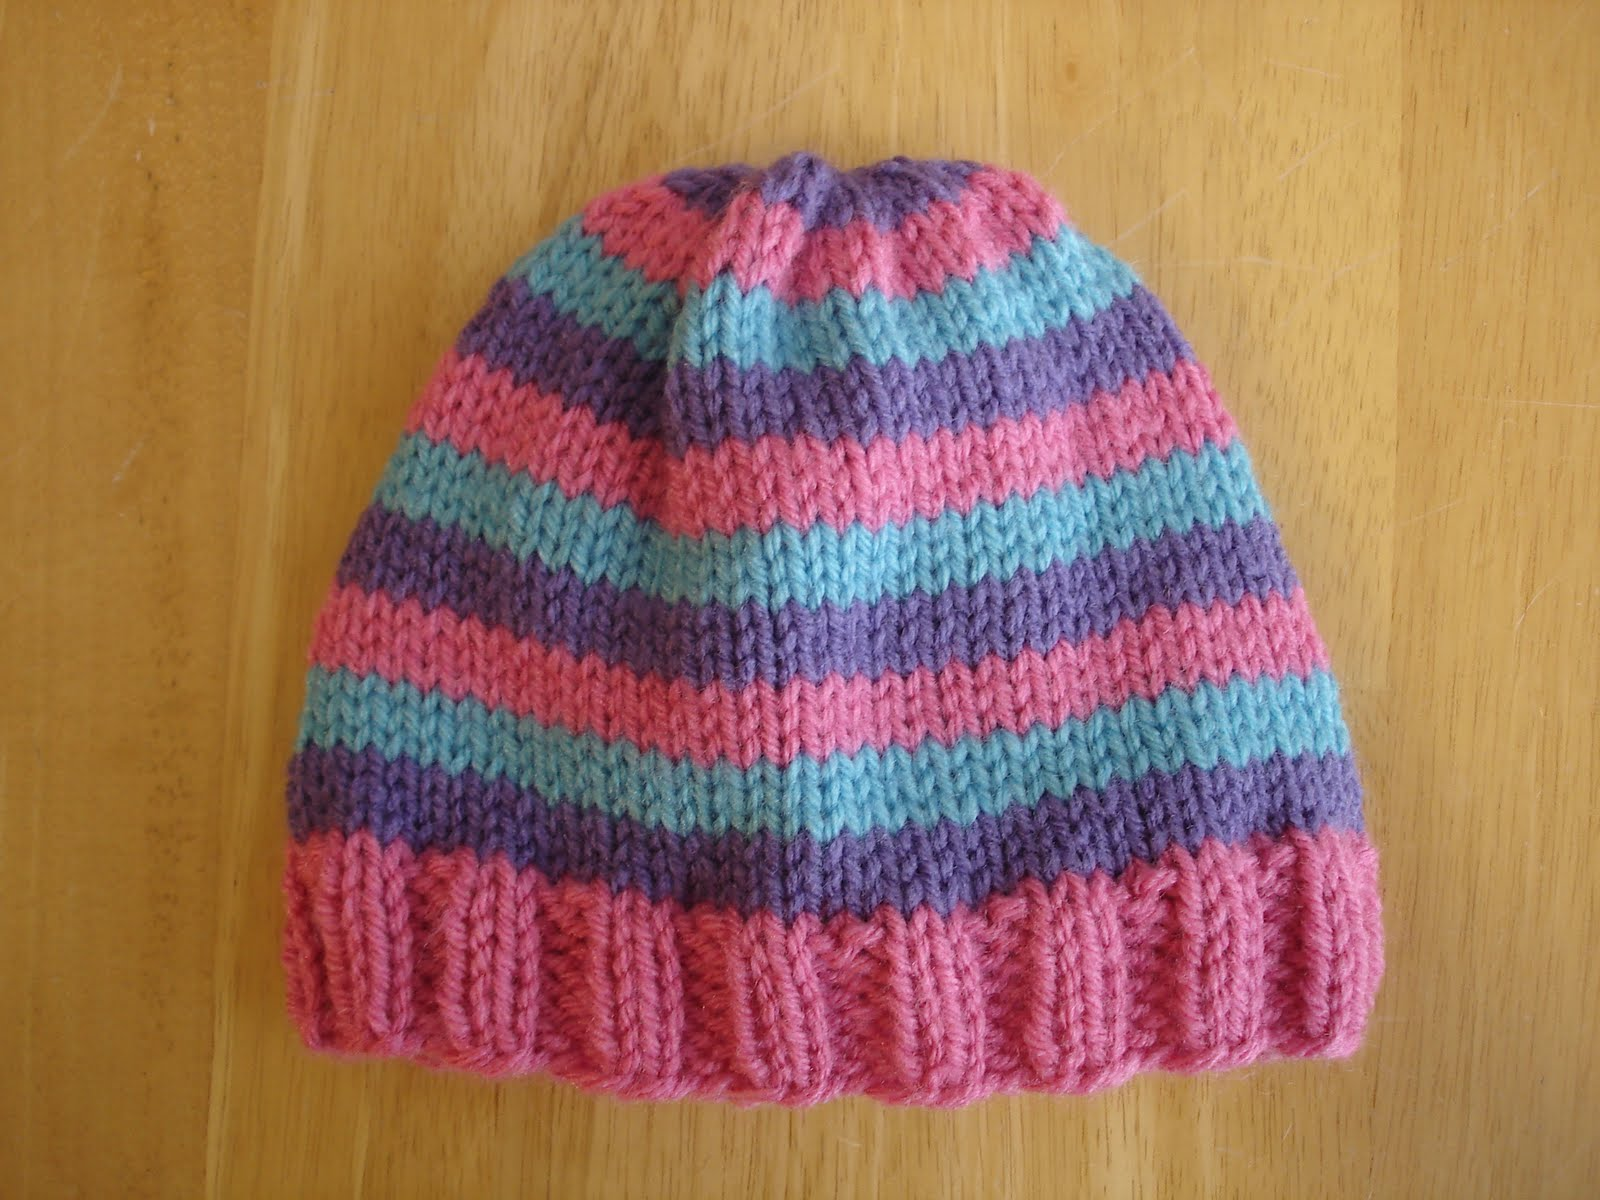 Kids Knit Hat Patterns : Fiber Flux: Free Knitting Pattern...Super Pink Toddler Hat!